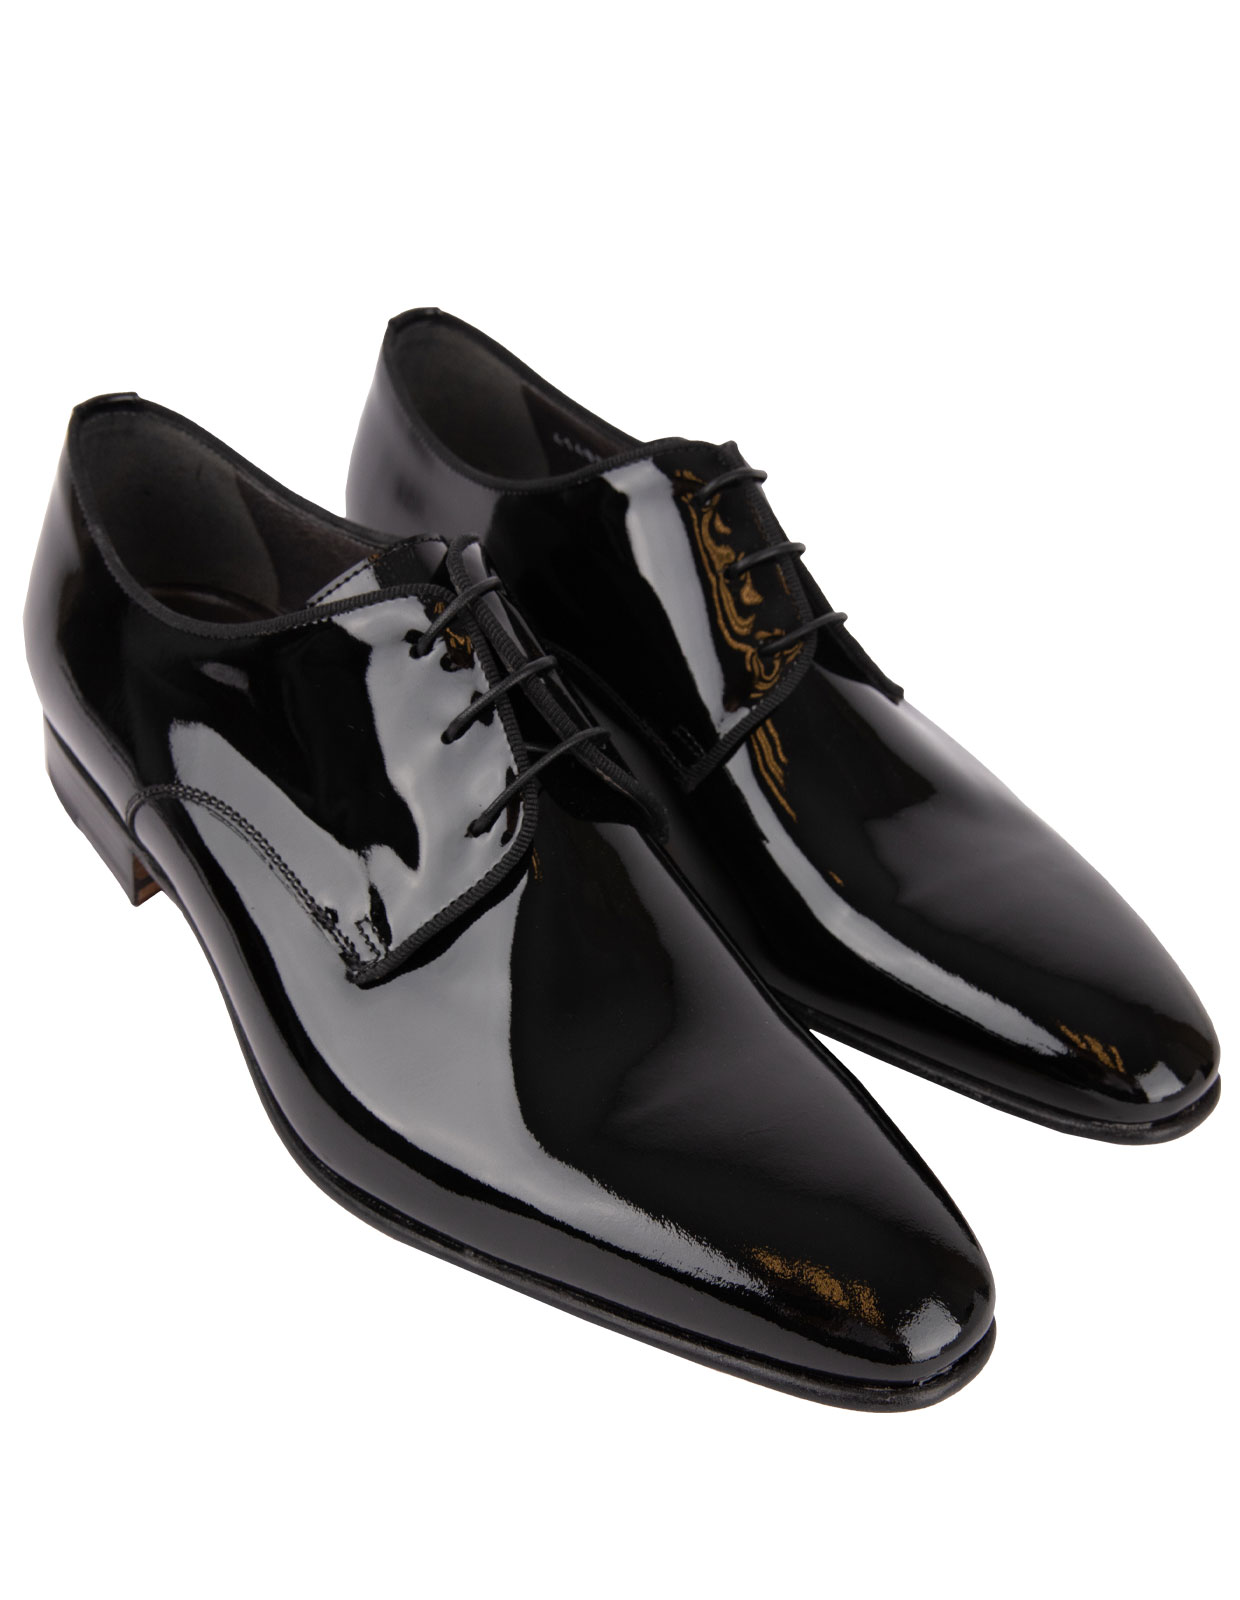 Linz Patent Leather Derby Shoes Black